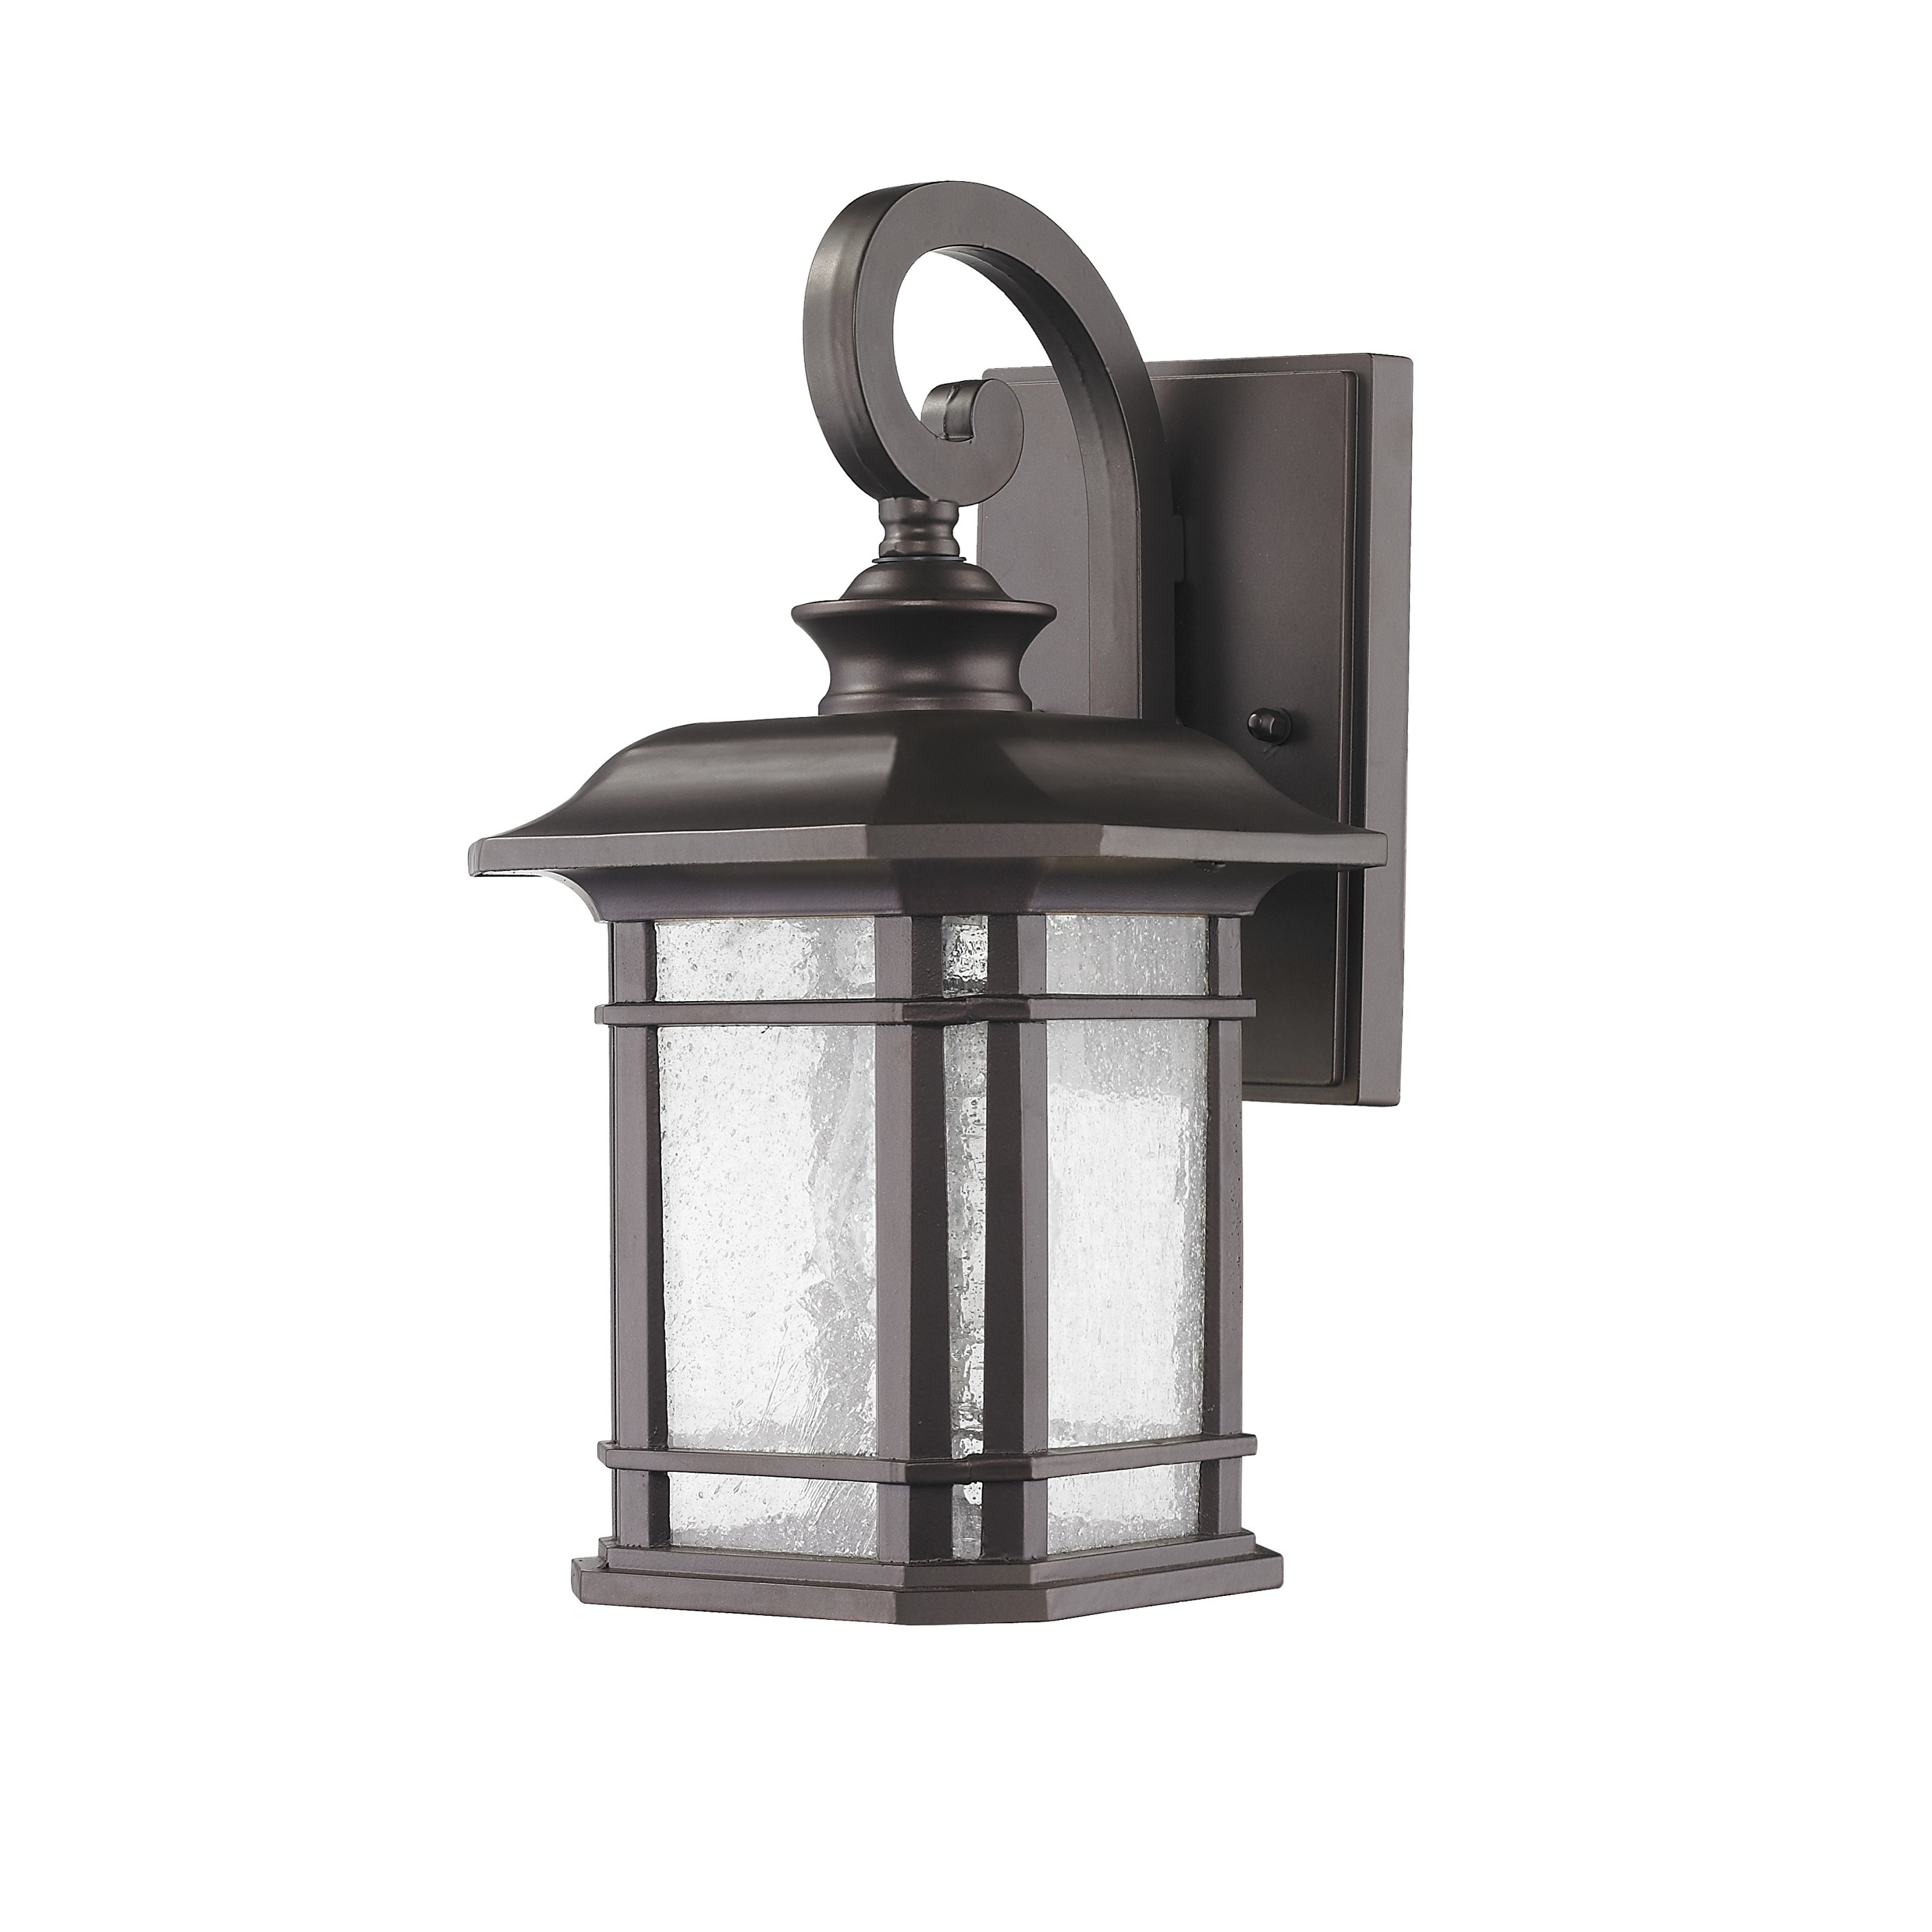 Outdoor Wall Lighting Wayfair 1 Light Lantern ~ Loversiq Pertaining To Most Current Contemporary Outdoor Solar Lights At Wayfair (View 13 of 20)